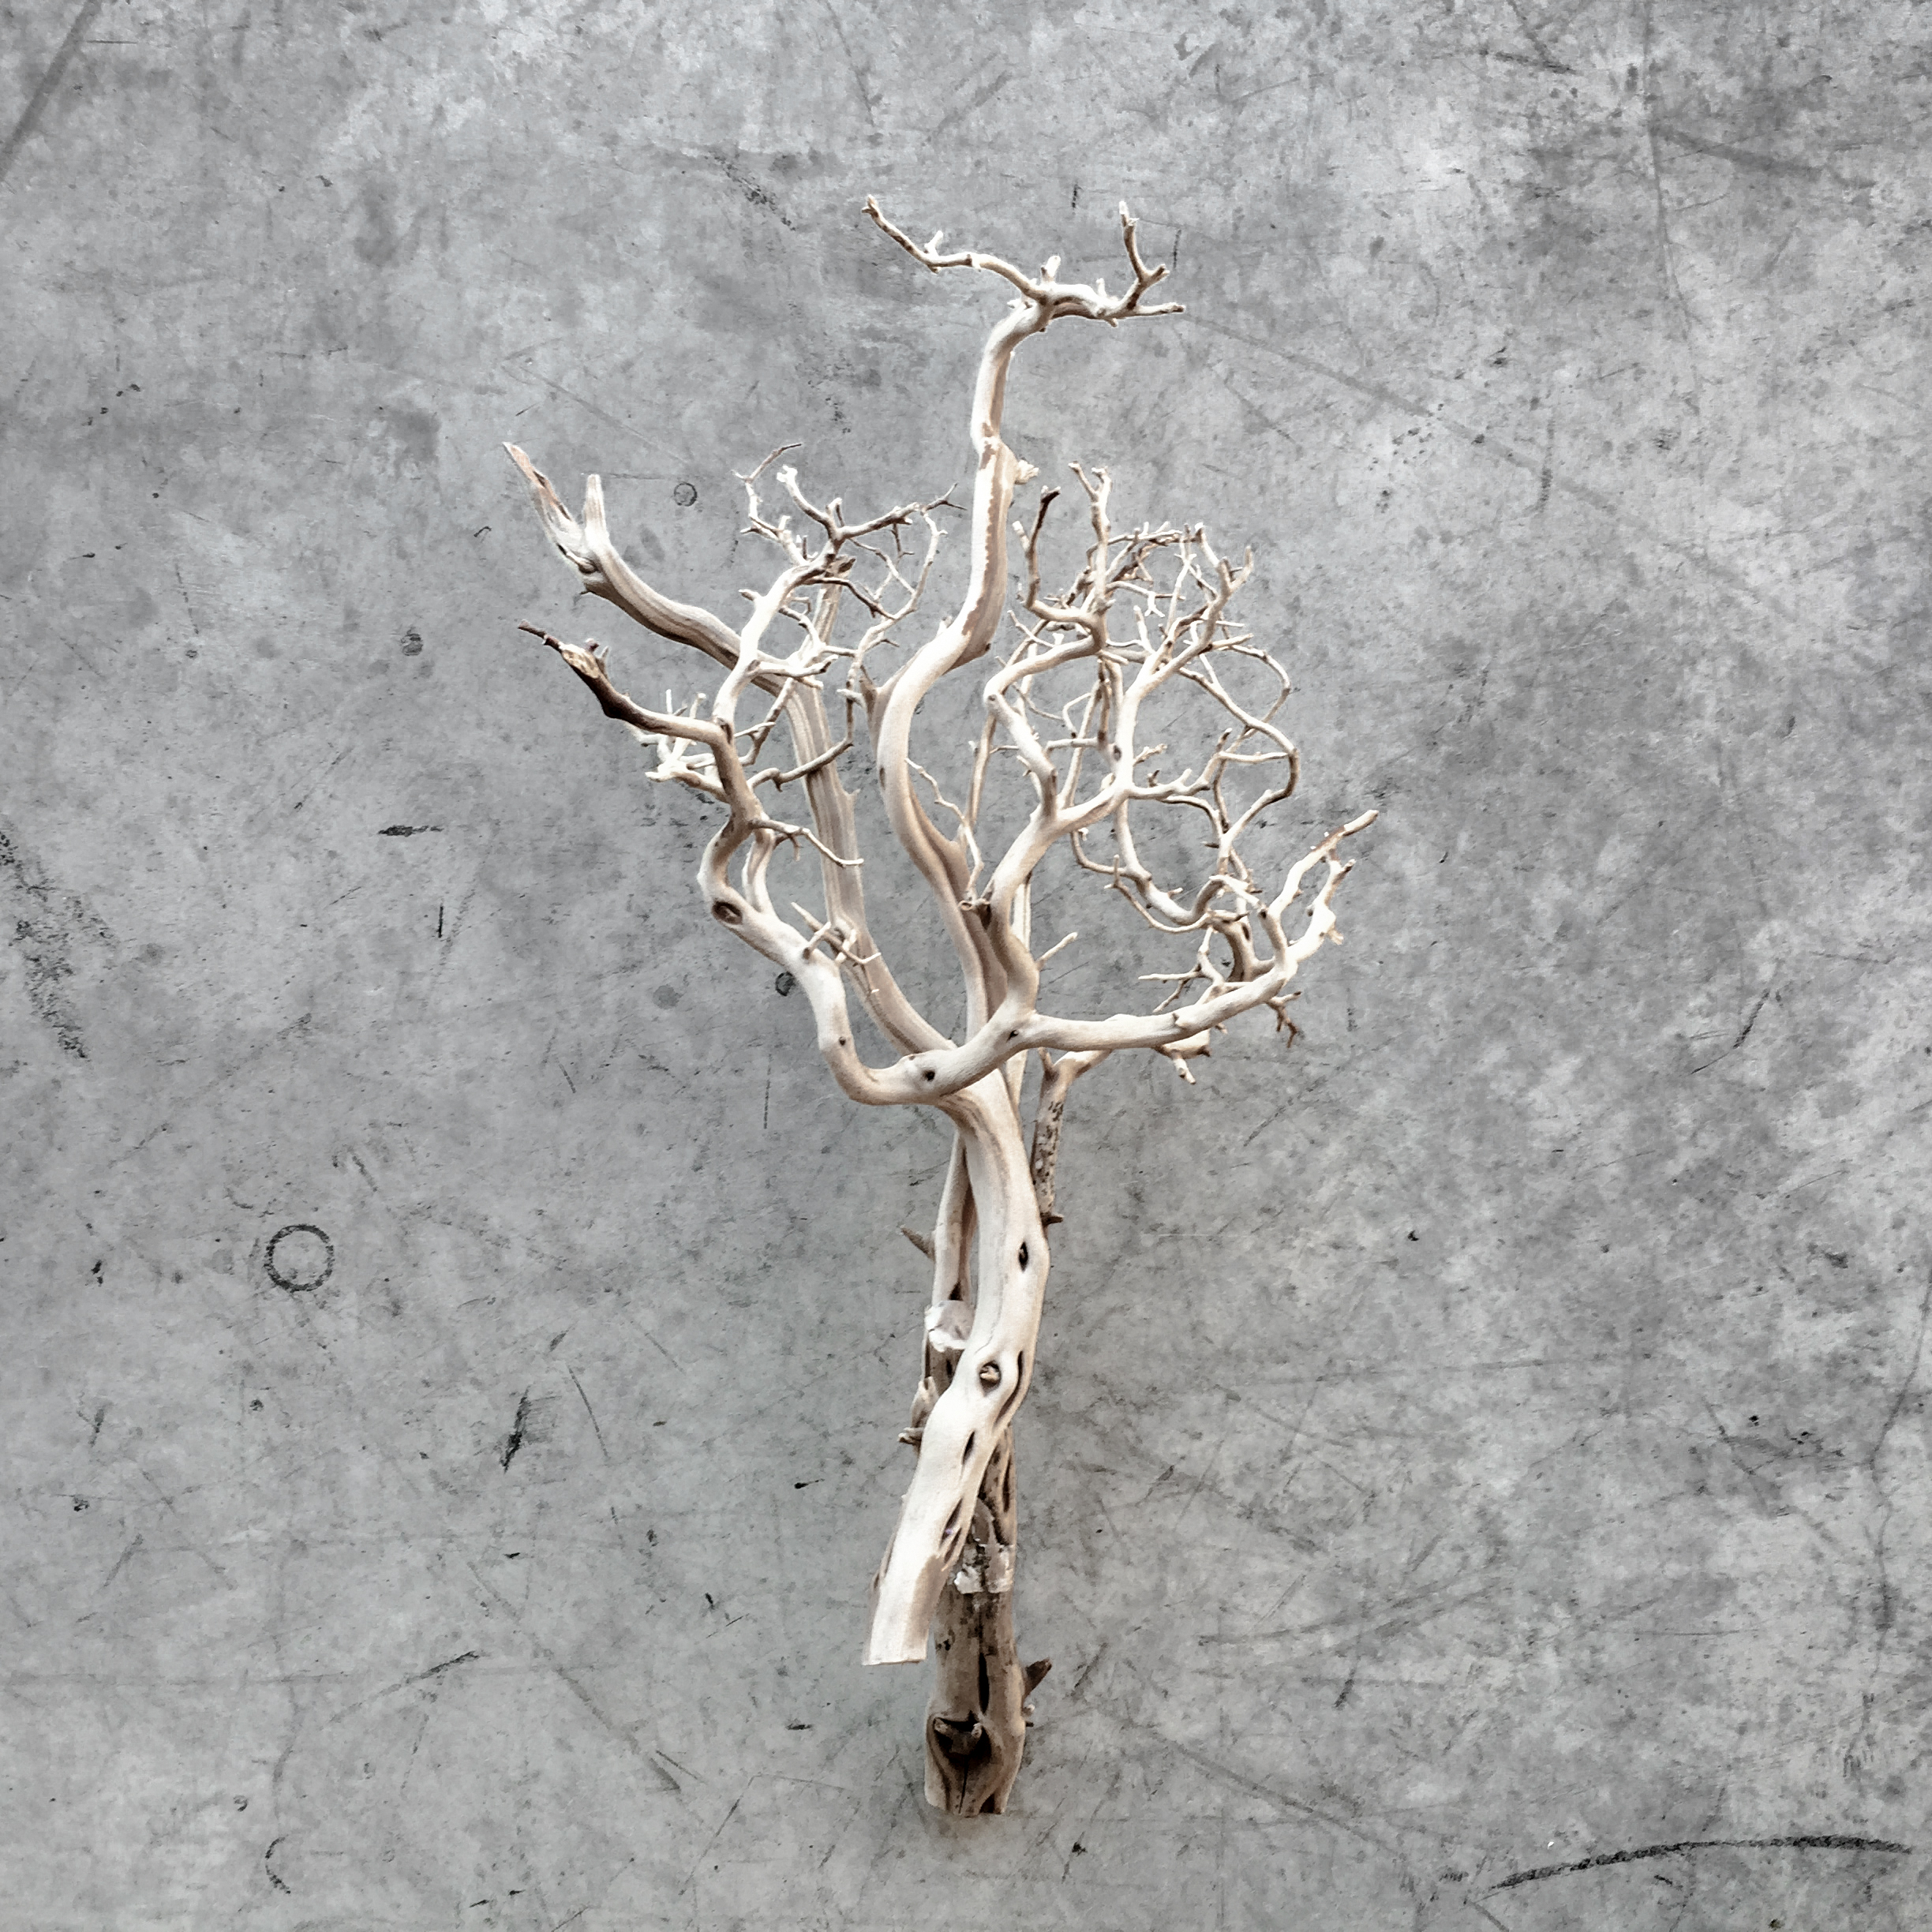 Roots before Branches.